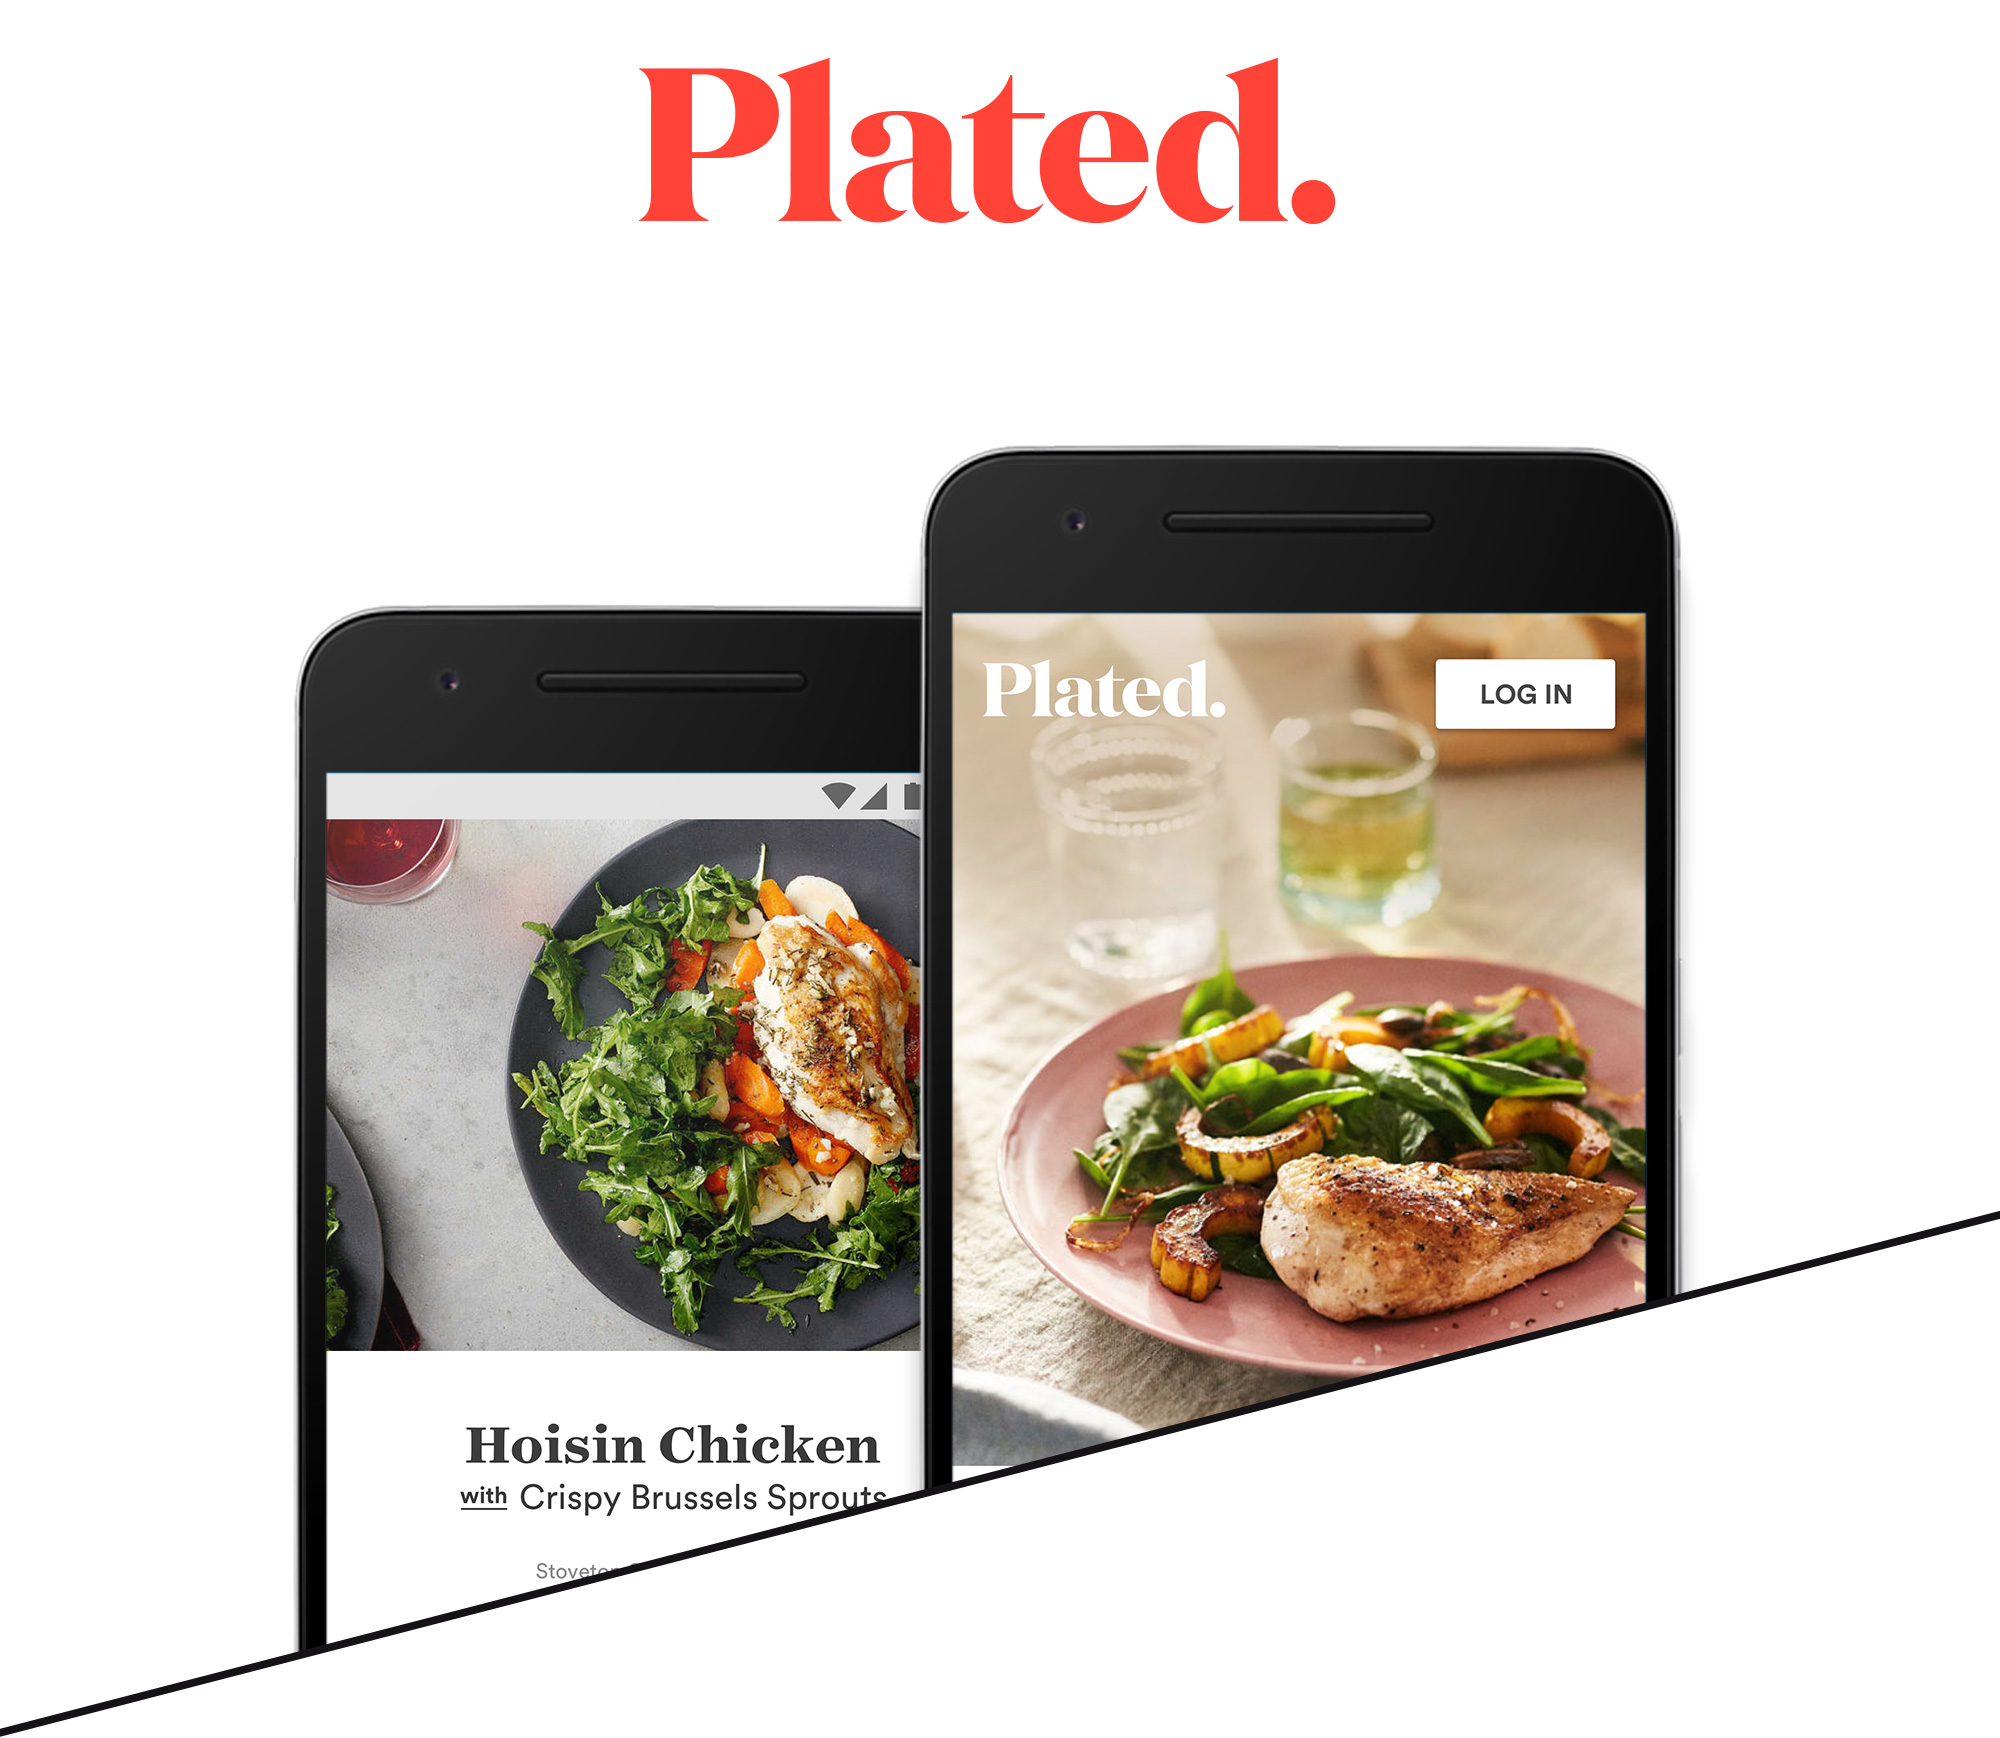 Plated case study by Tendigi